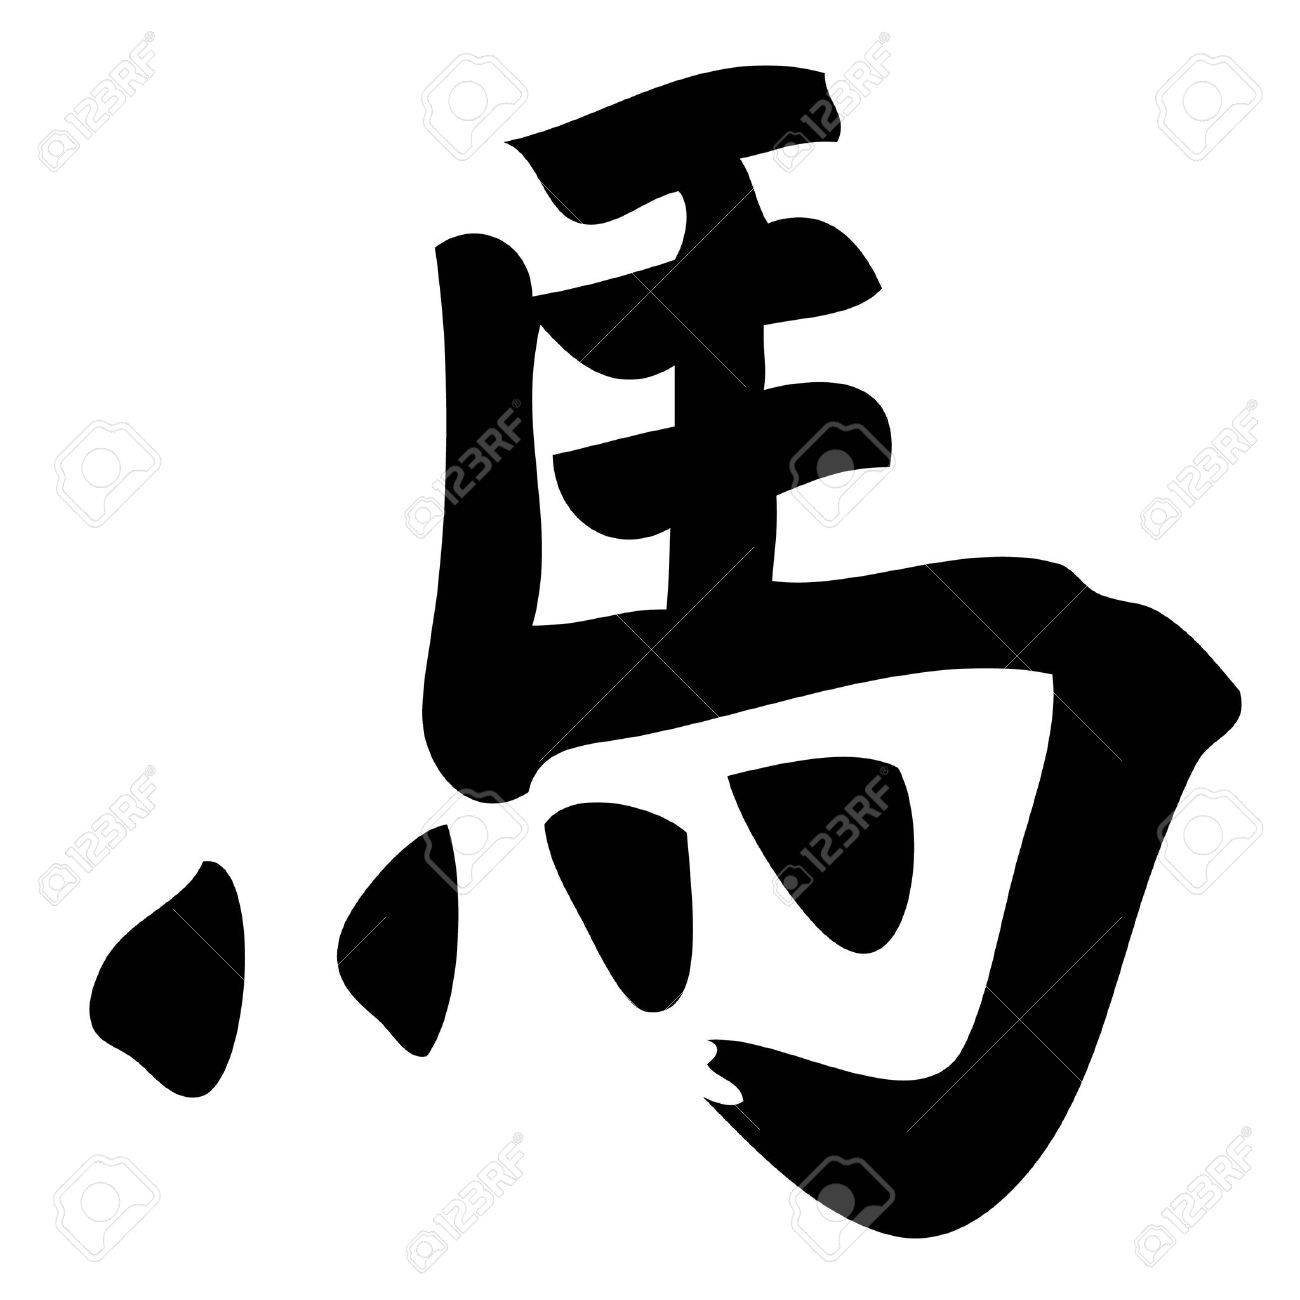 Year of the horse chinese character more information djekova horse chinese calligraphy year of the horse chinese character biocorpaavc